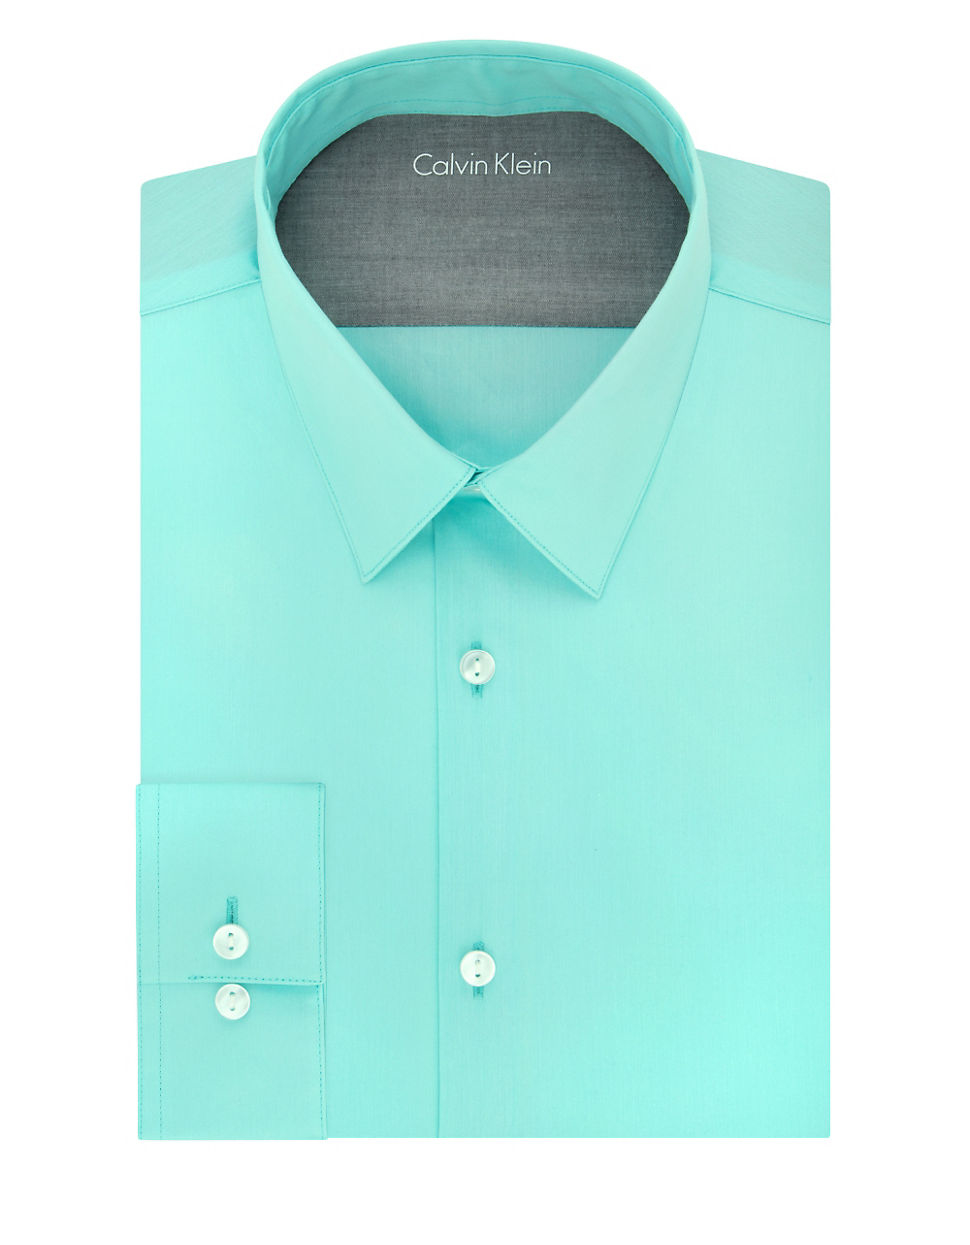 calvin klein extreme slim fit dress shirt in blue for men